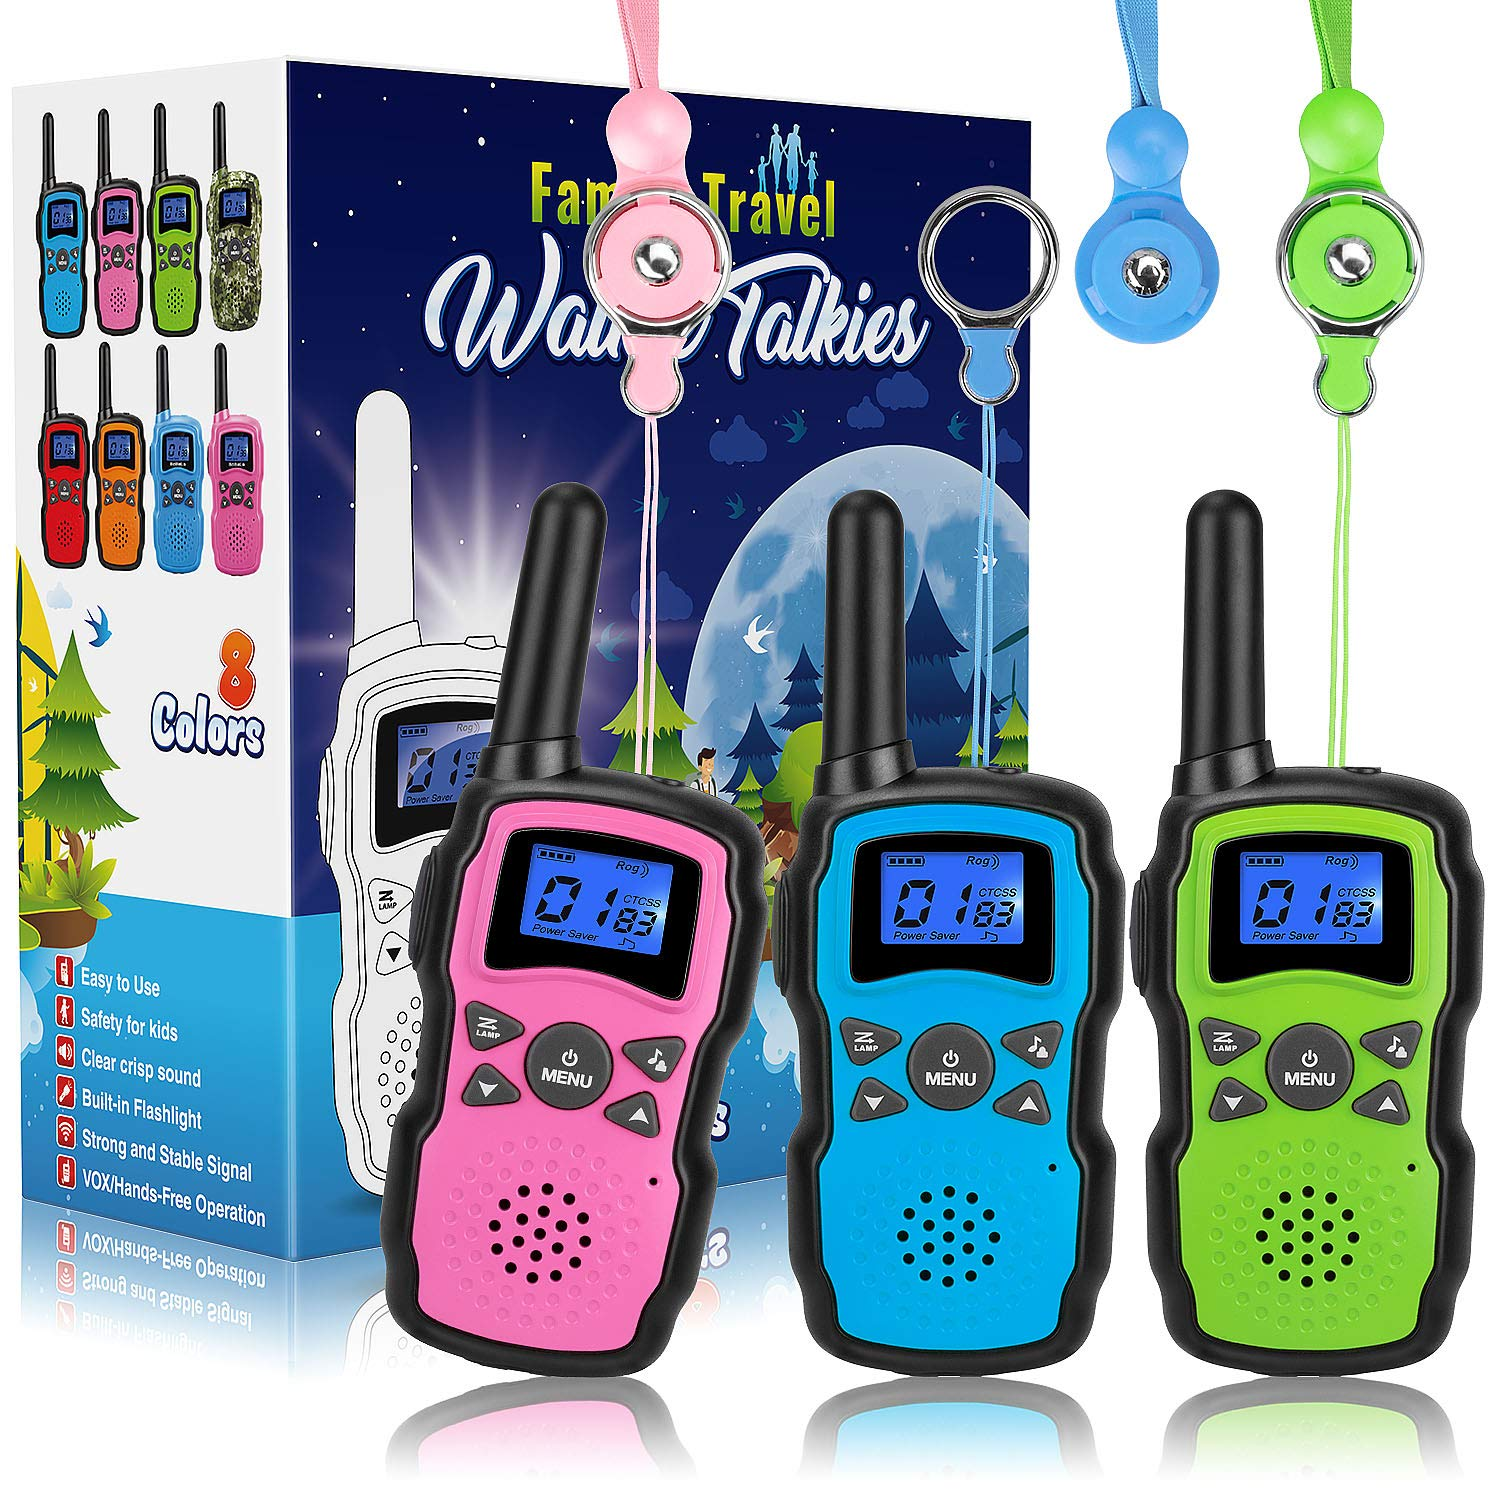 Wishouse Walkie Talkies for Kids, Two Way Radio Family Talkabout for Adults Cruise Ship Long Range, Outdoor Camping Hiking Fun Toys Birthday Gift for 3 4 5 6 7 8 9 10 11 12 Year Old Girls Boys 3 Pack by Wishouse (Image #1)